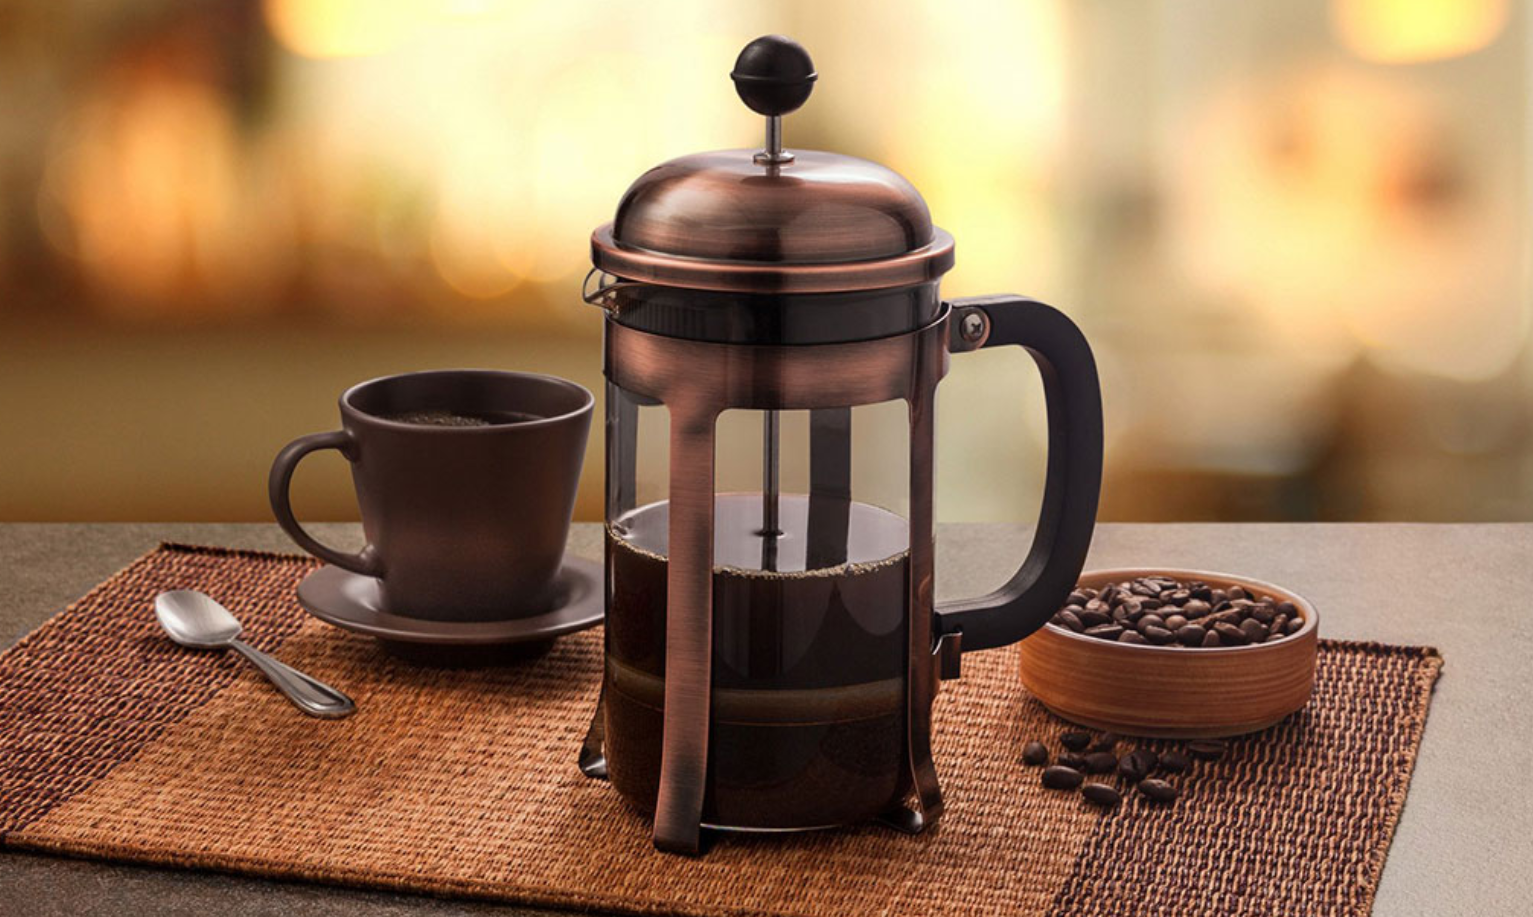 How to make delicious French press coffee